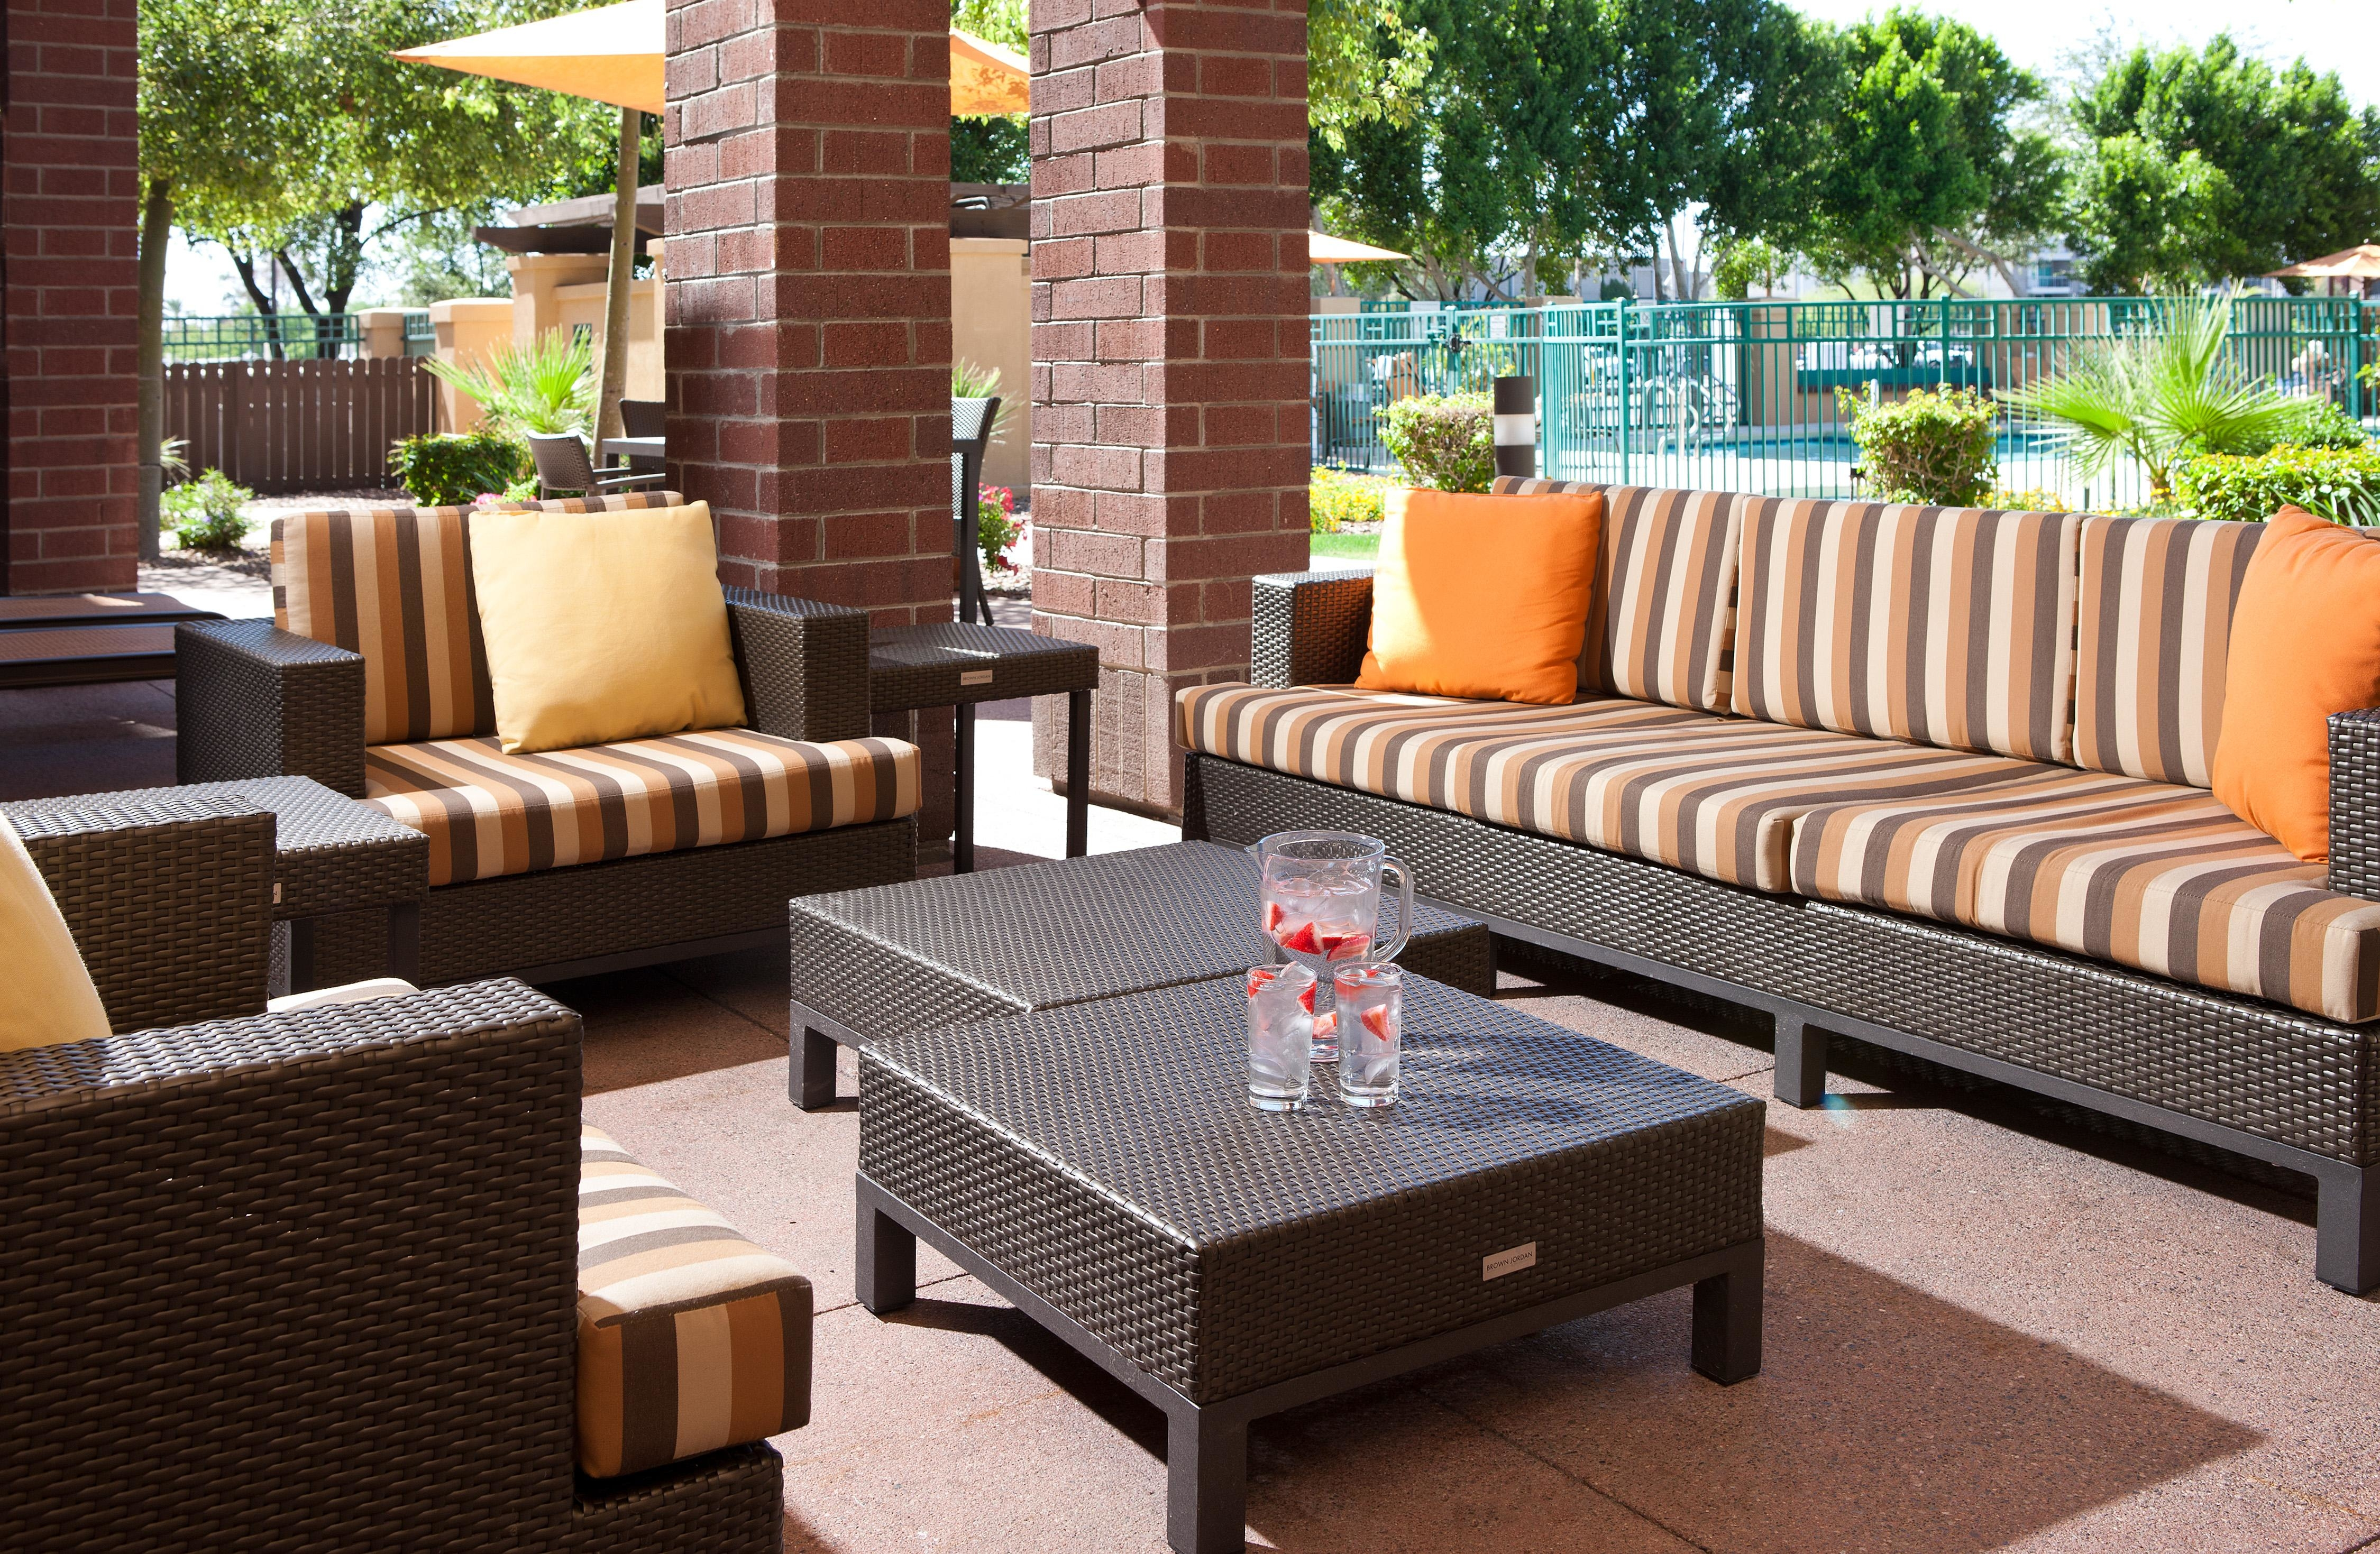 Courtyard by Marriott Tempe Downtown image 5